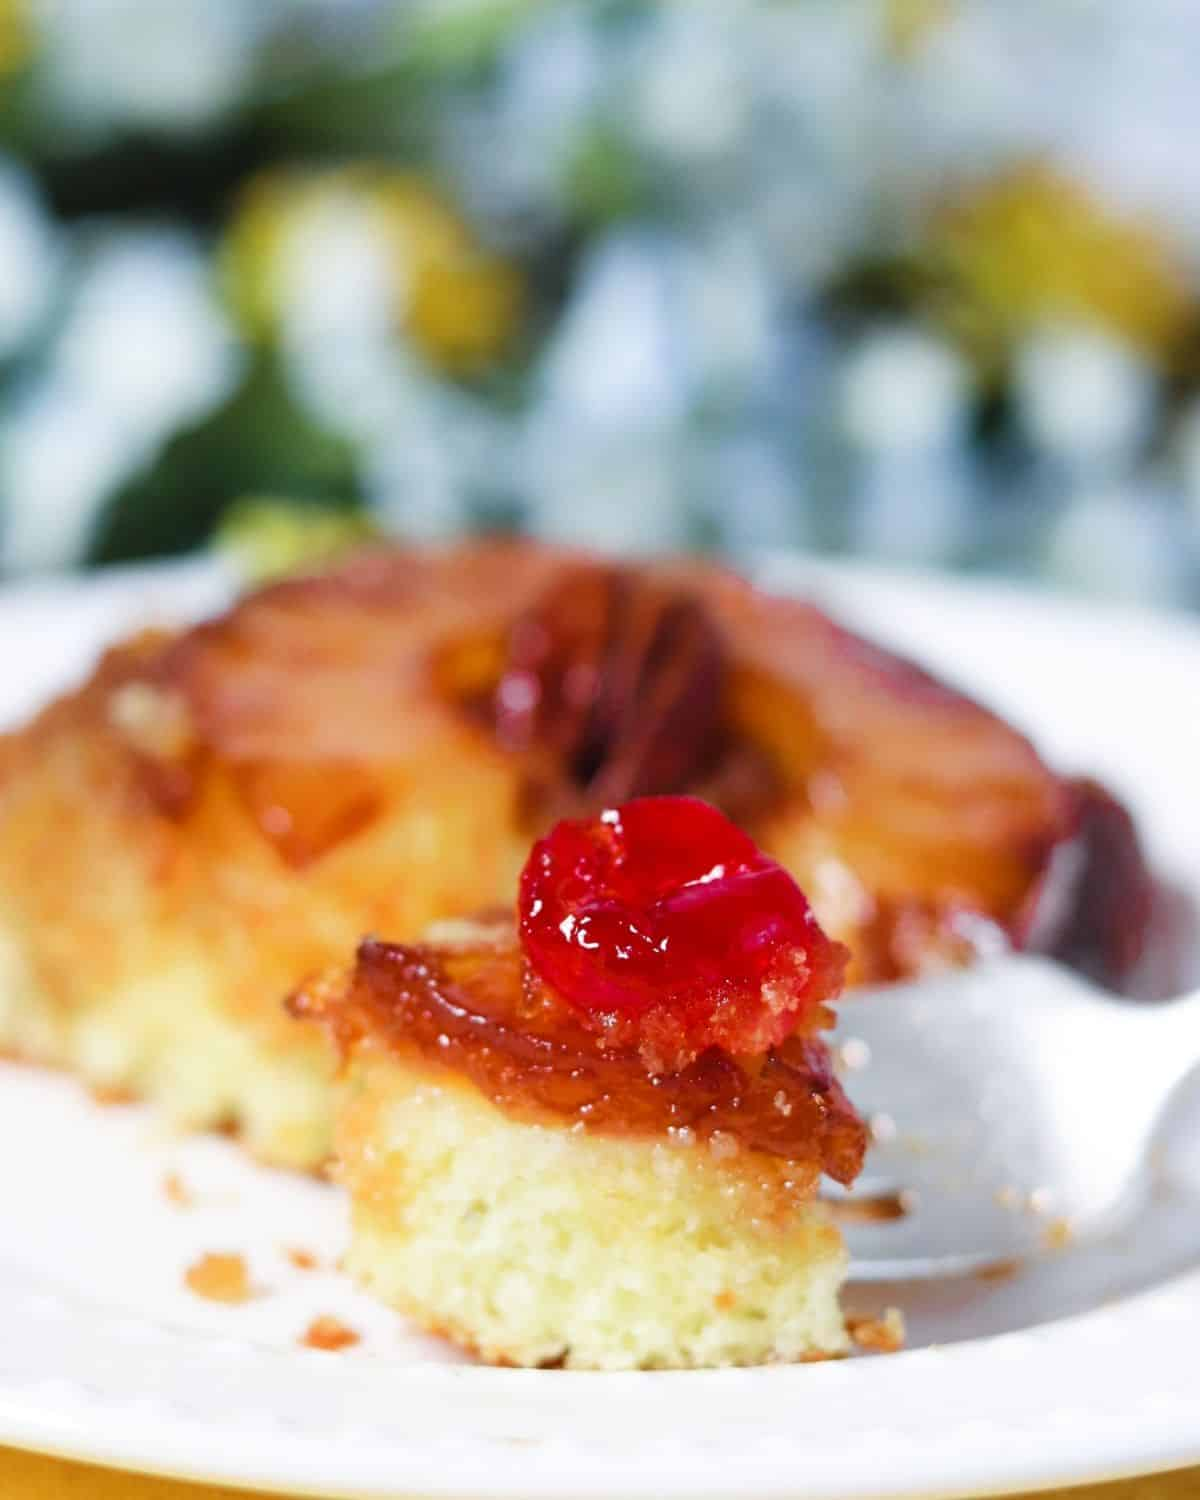 A silver fork with a piece of yellow cake topped with a maraschino cherry on the fork with the cake in the background.